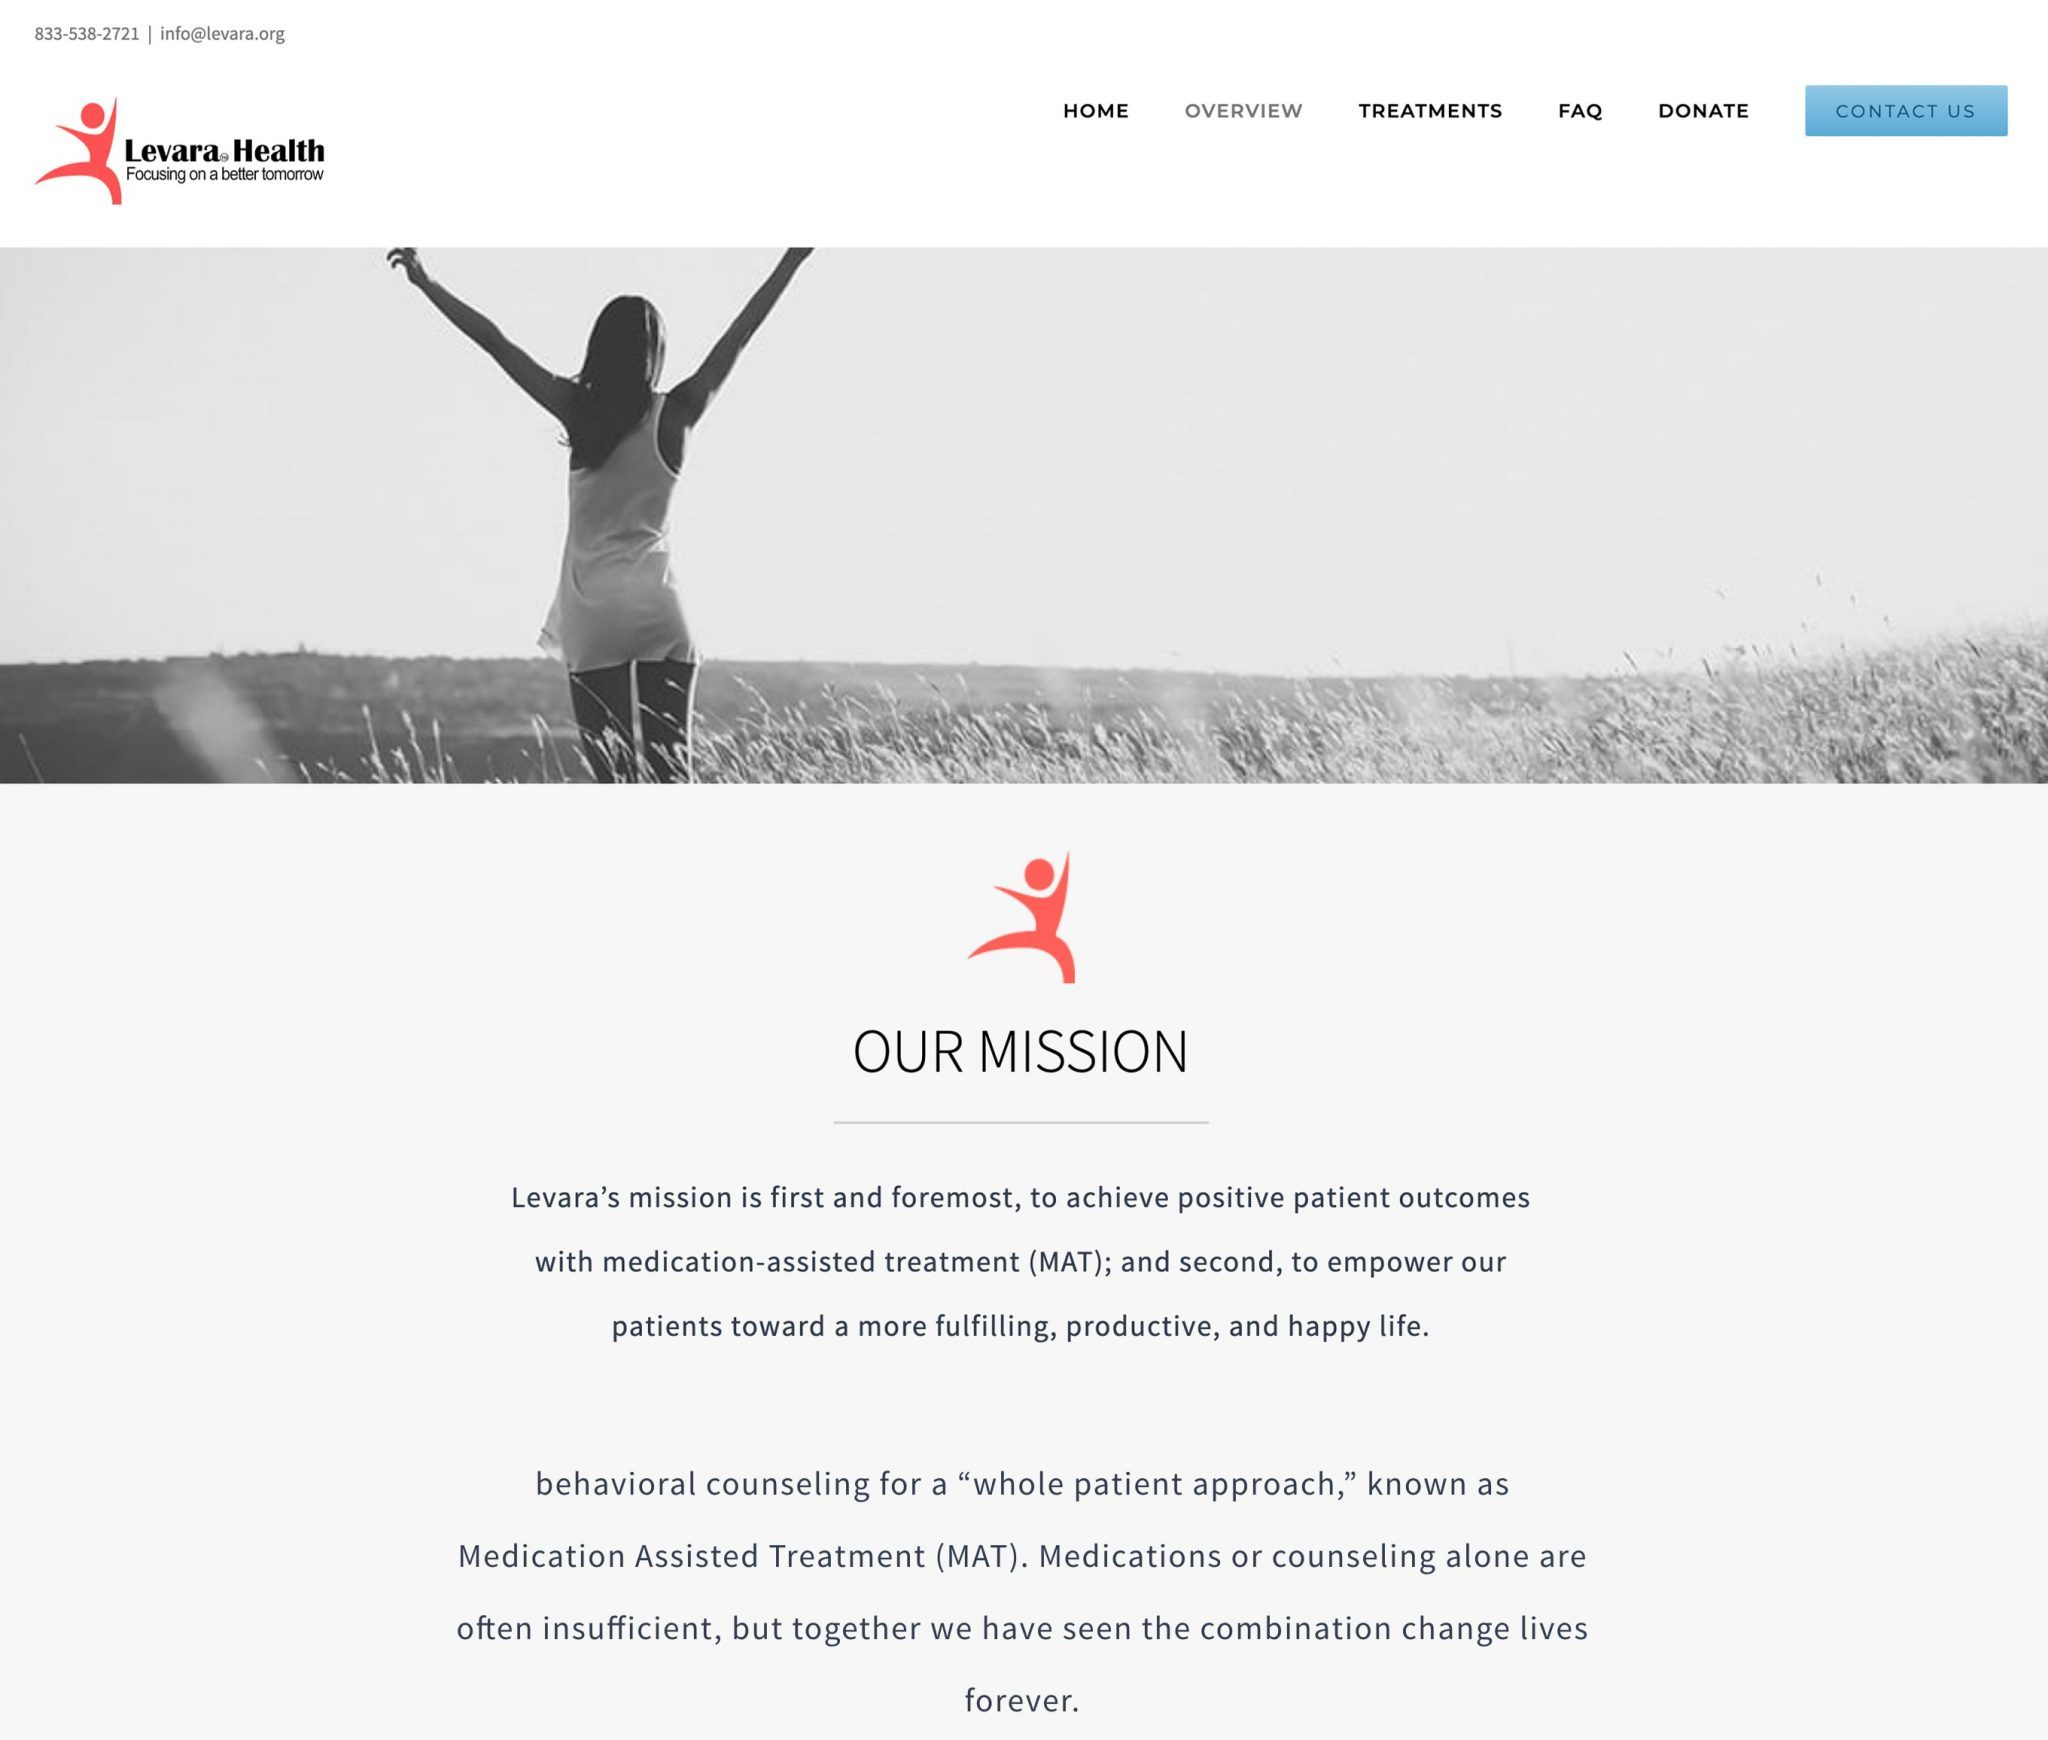 Levara Health - Our Mission